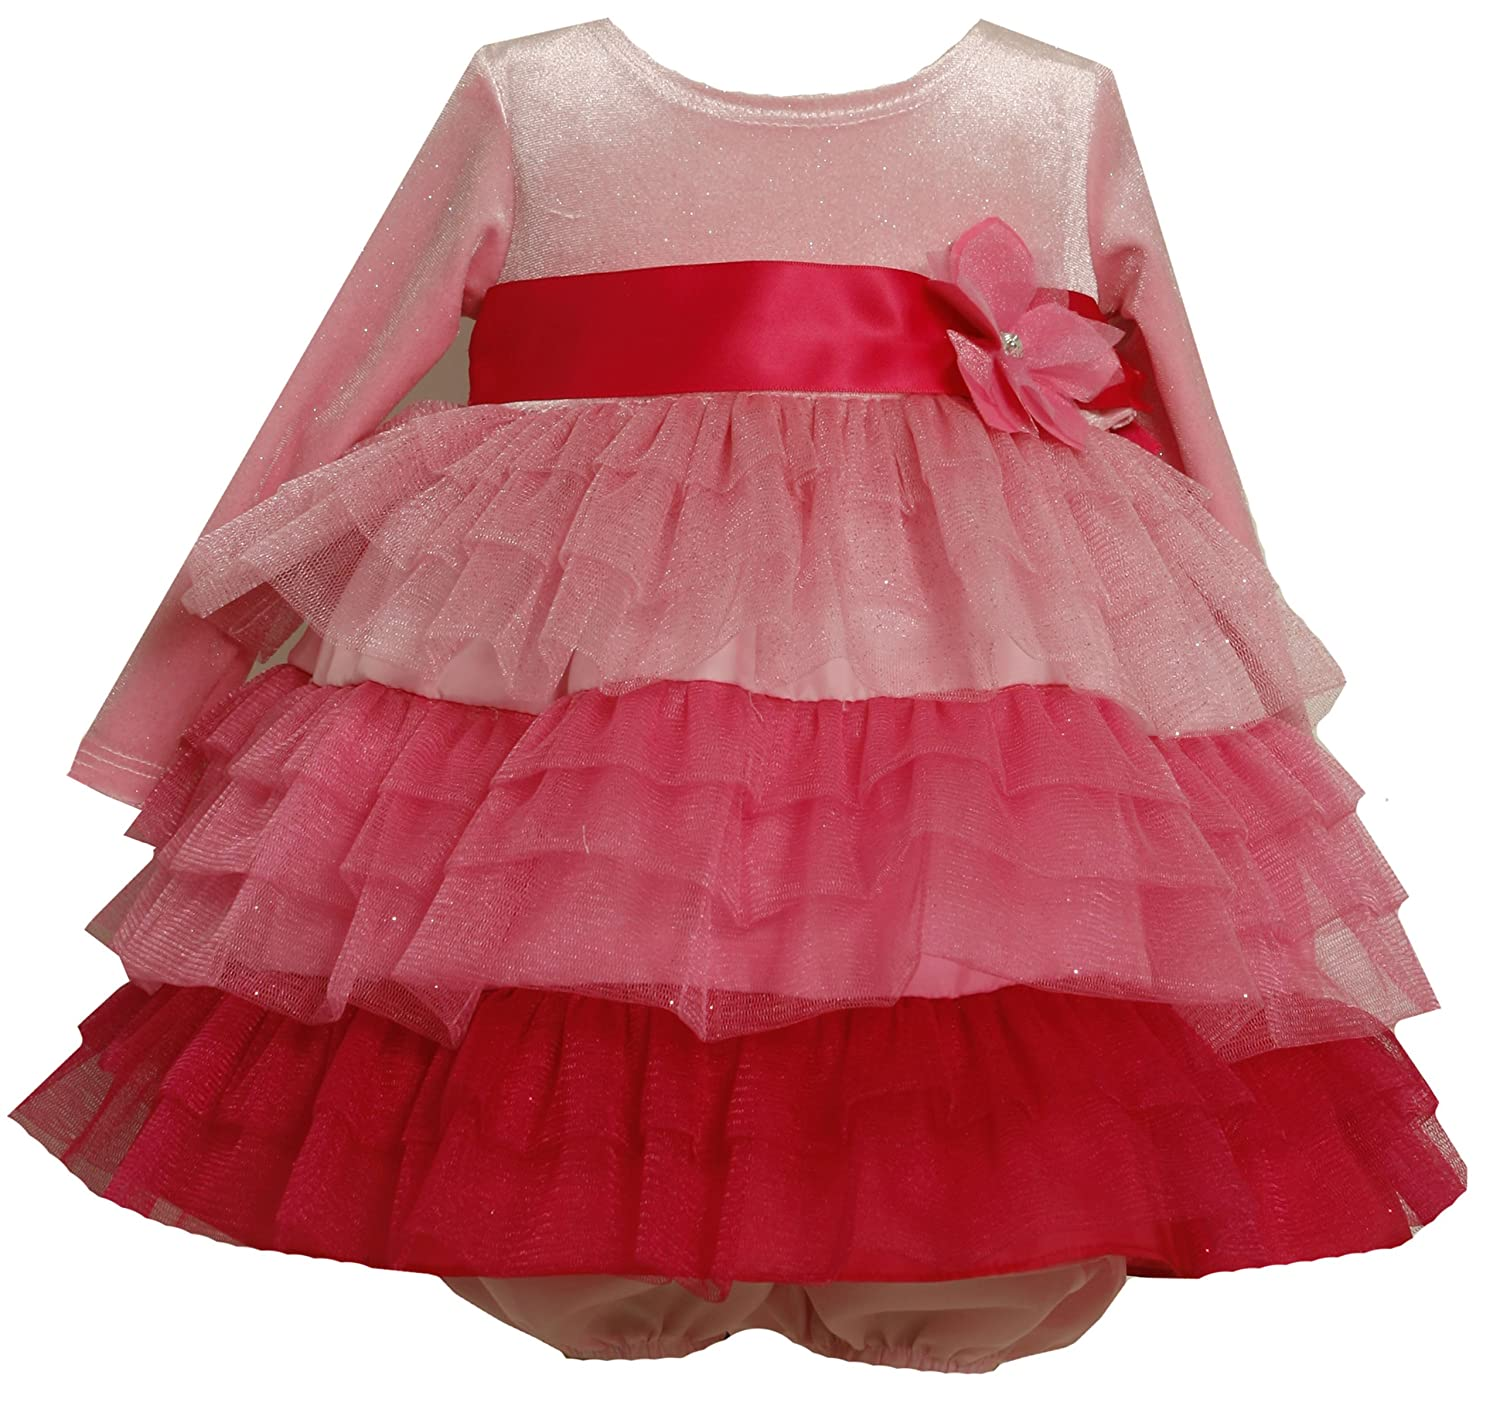 Bonnie Baby-girls Infant Shades Of Pink Tiered Dress